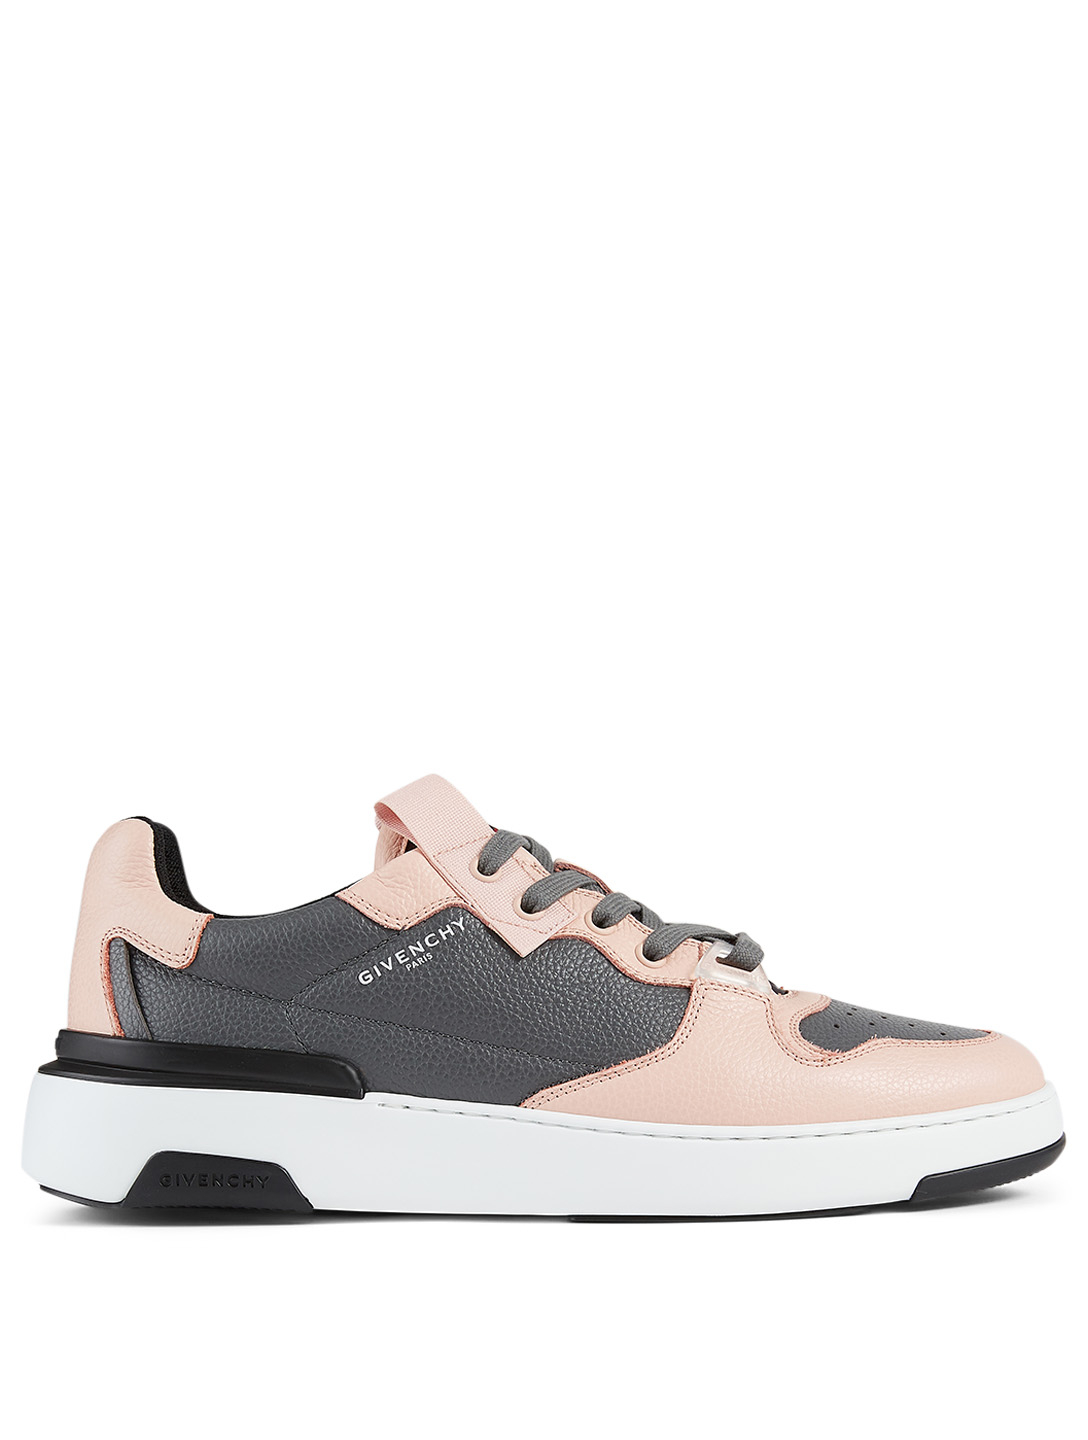 GIVENCHY Wing Leather Sneakers Men's Pink